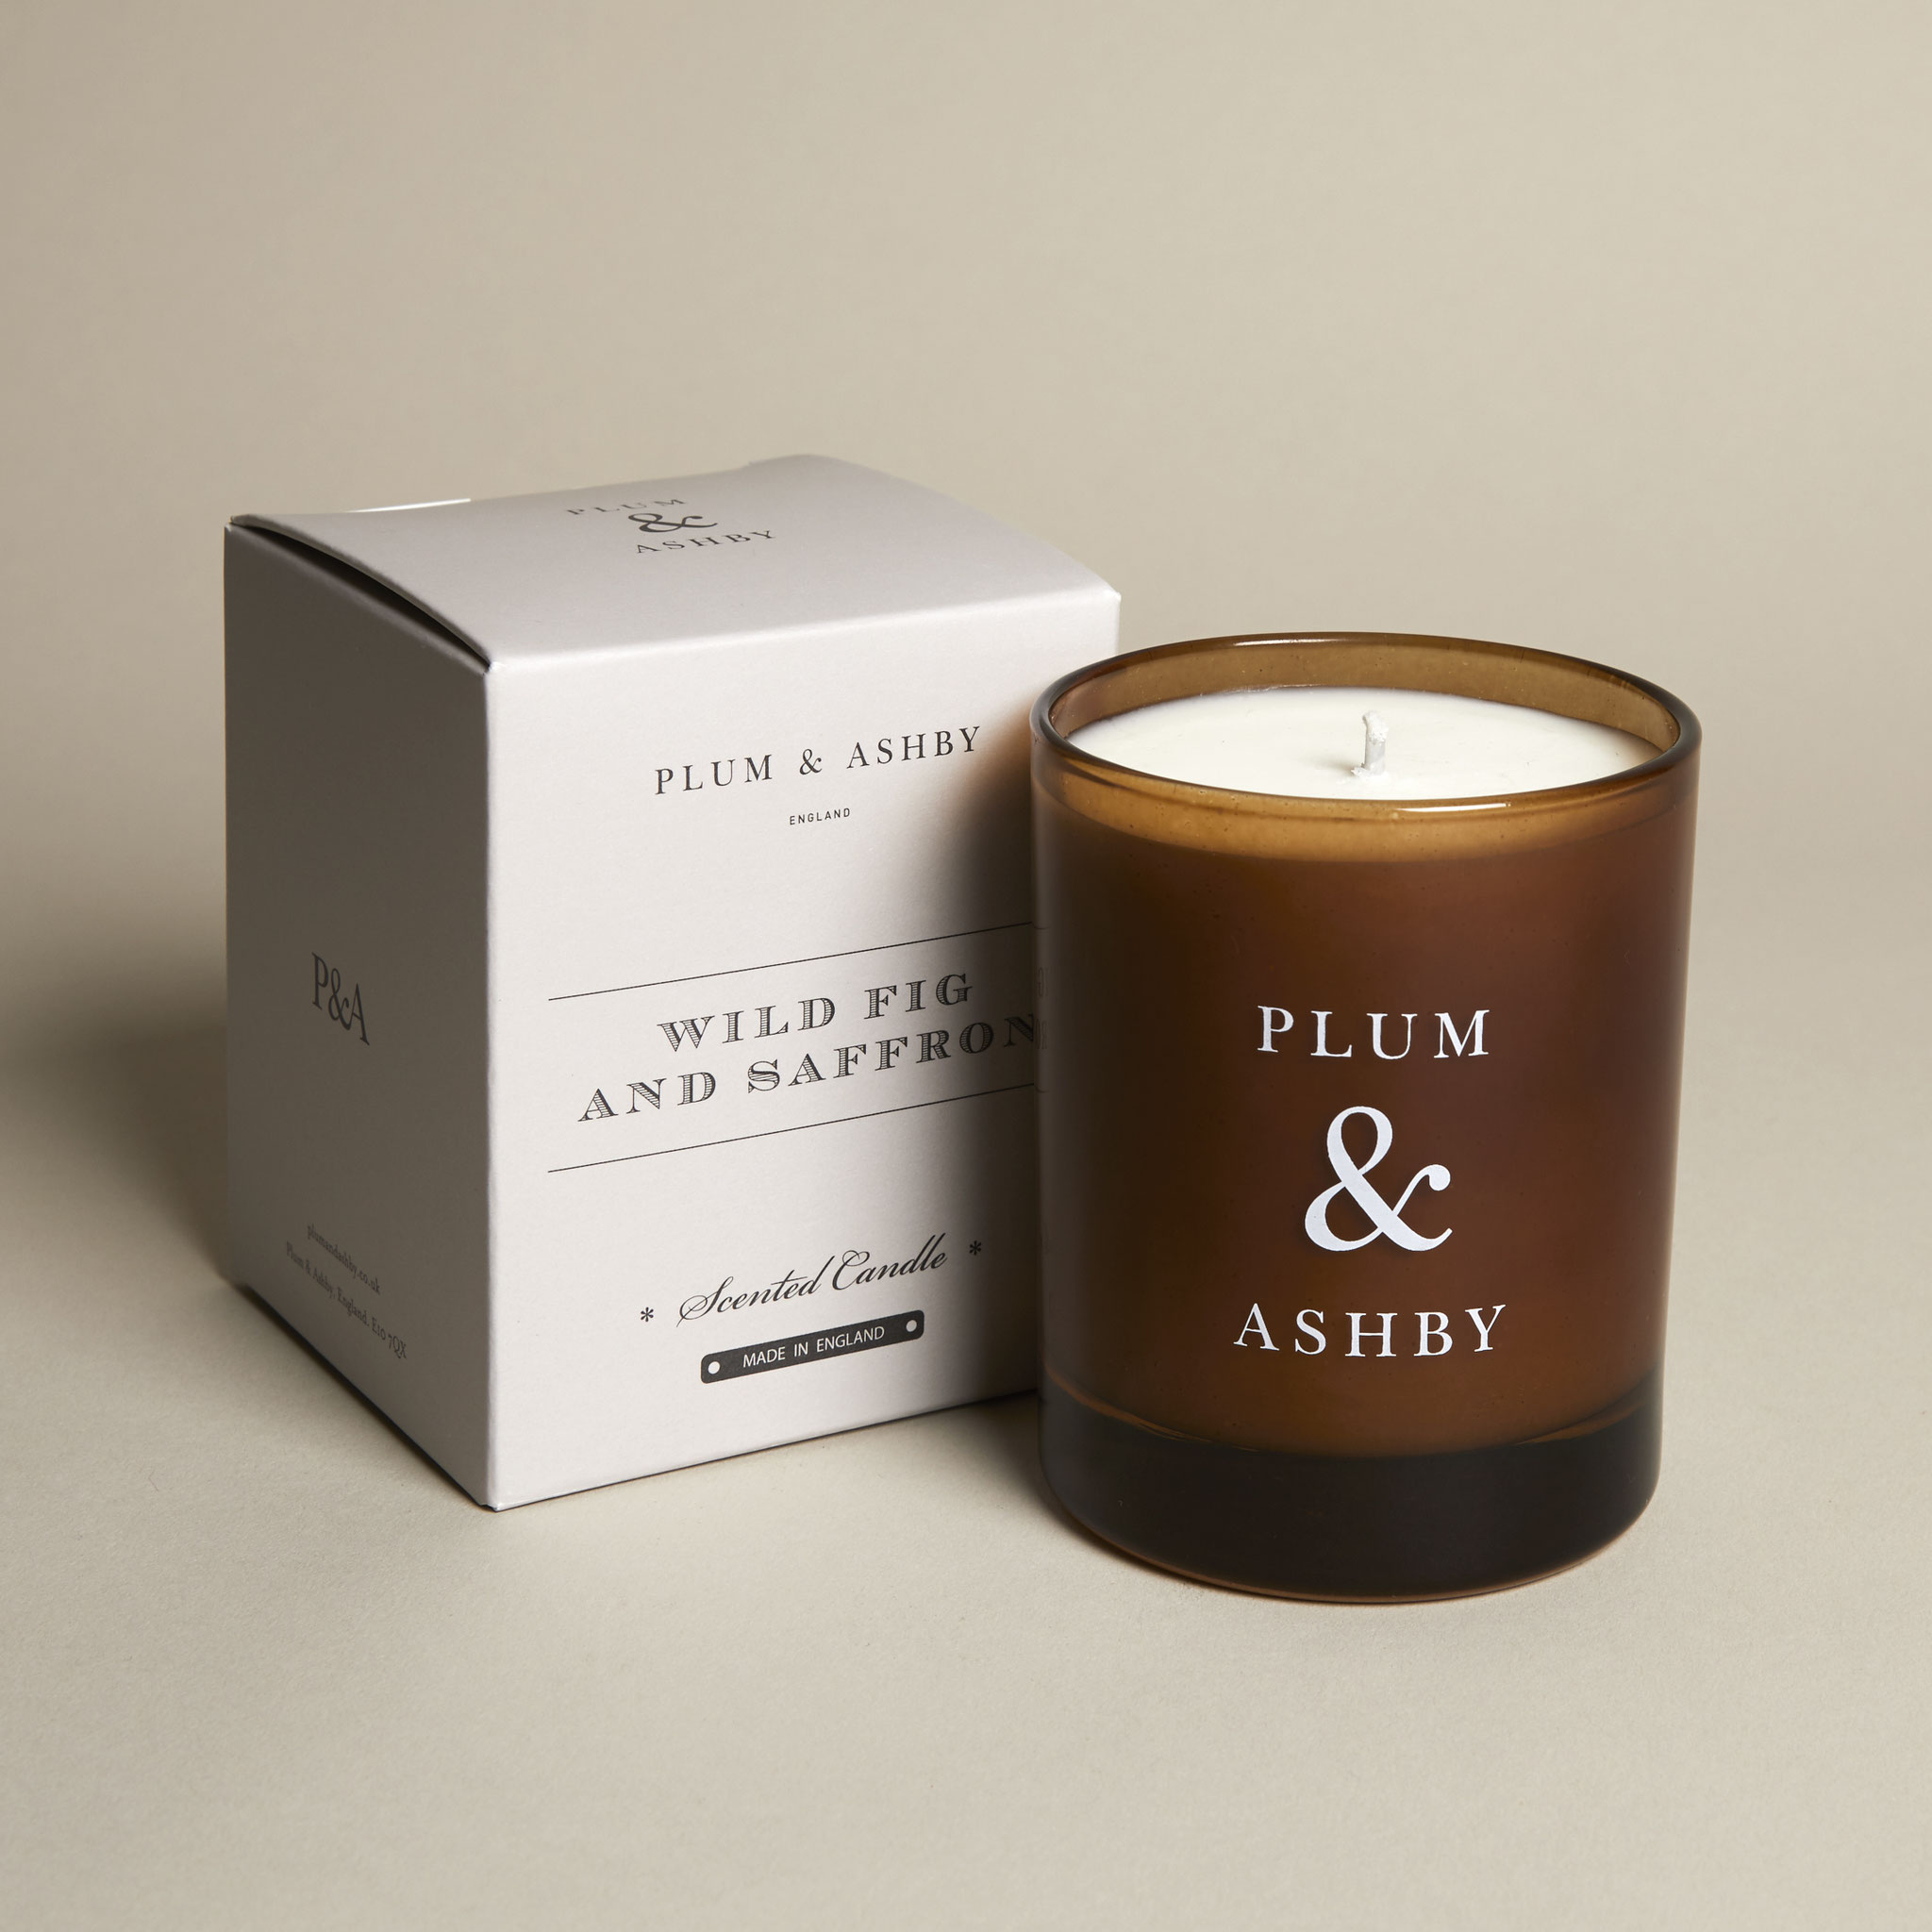 Plum & Ashby Natural Wild Fig and Saffron Candle